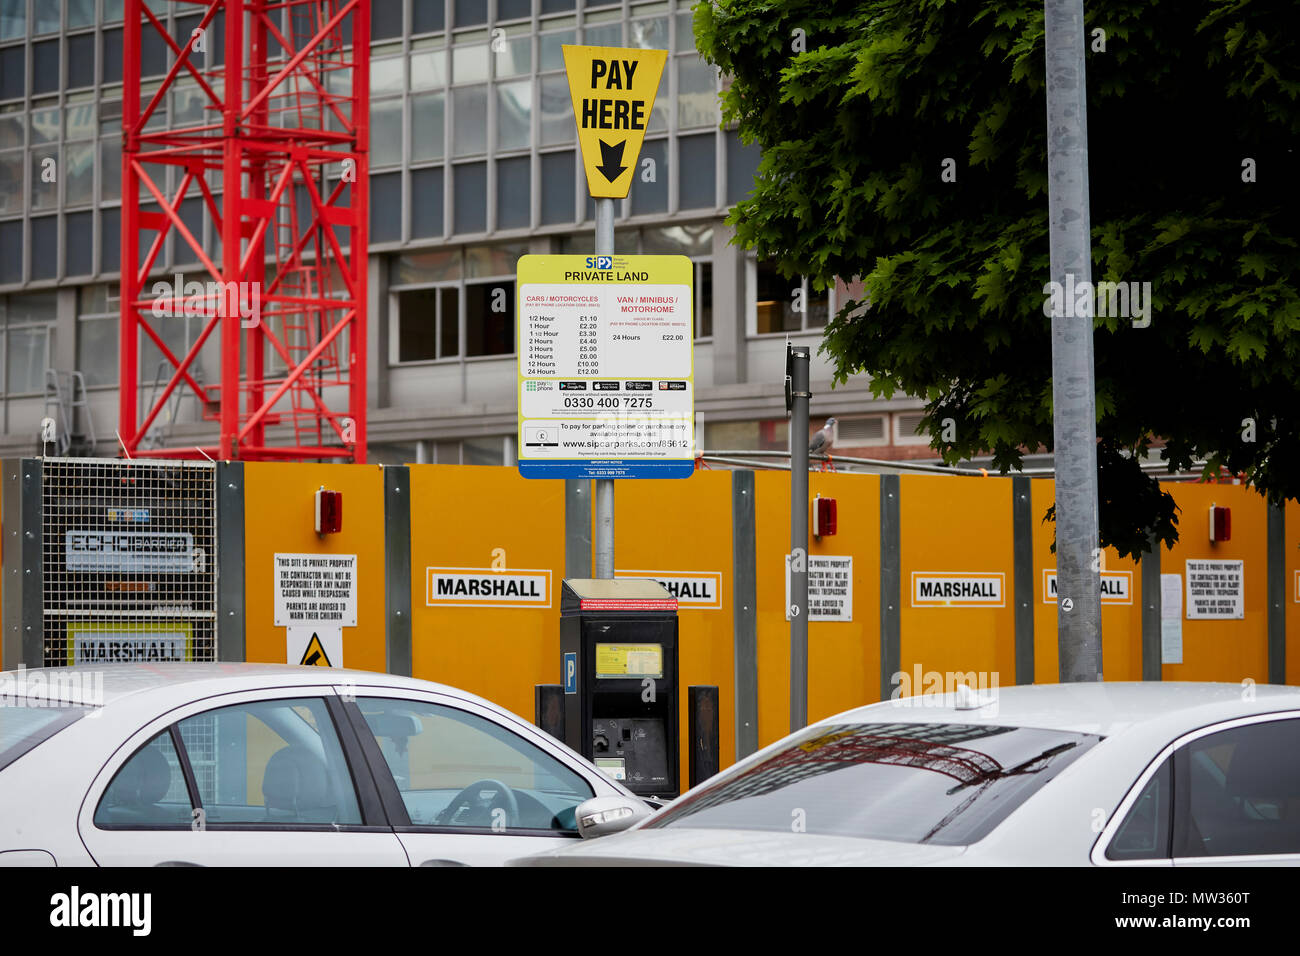 Simple. Intelligent. Parking. SIP site in the gay Village Manchester, tariff sign and pay here notice at their car park - Stock Image